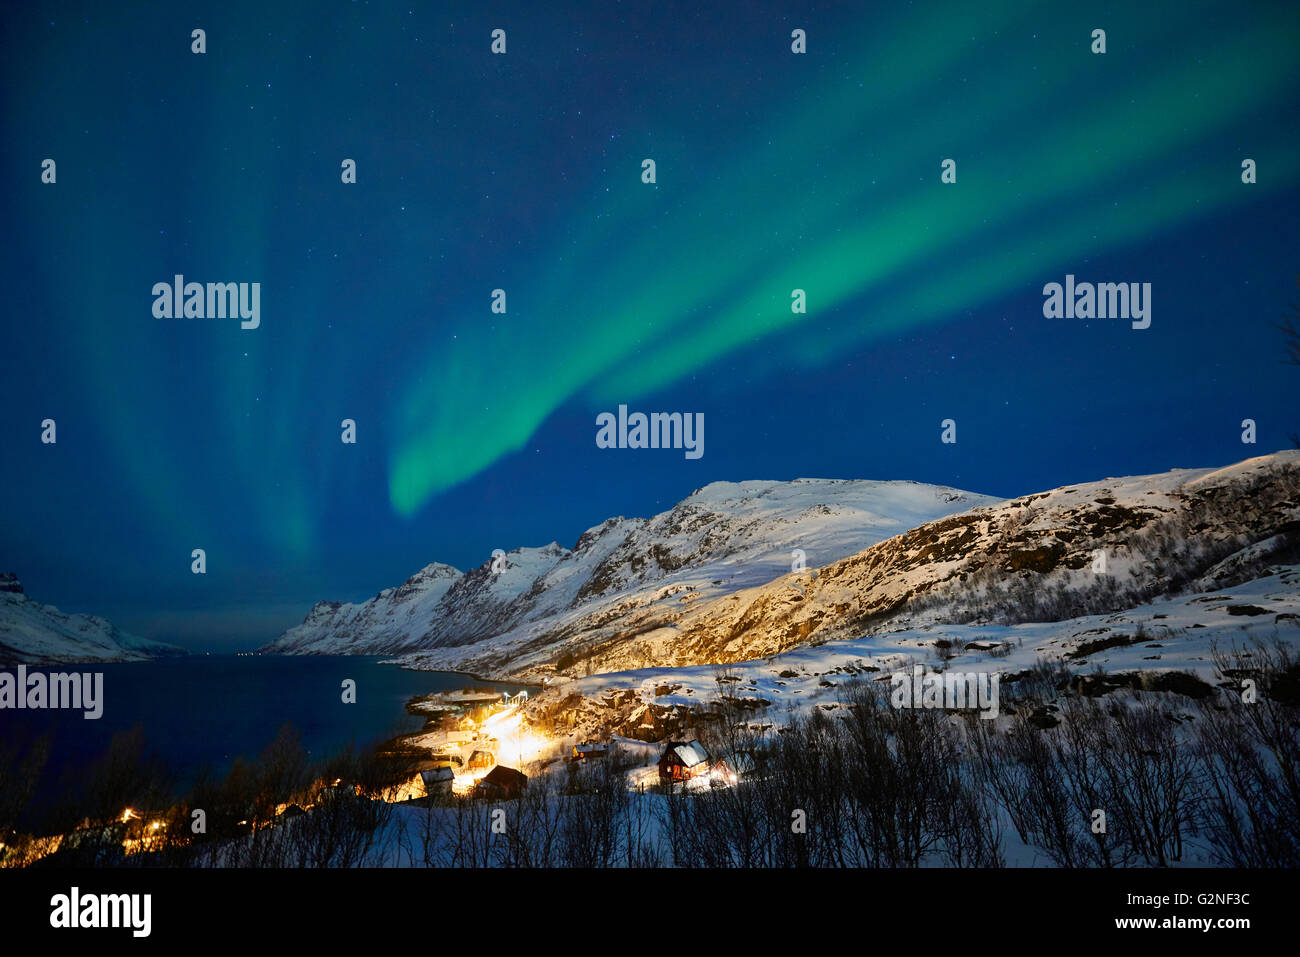 Aurora Borealis or northern lights over winter landscape in fjord of Ersfjordbotn, Tromsö, Troms, Norway, Europe - Stock Image